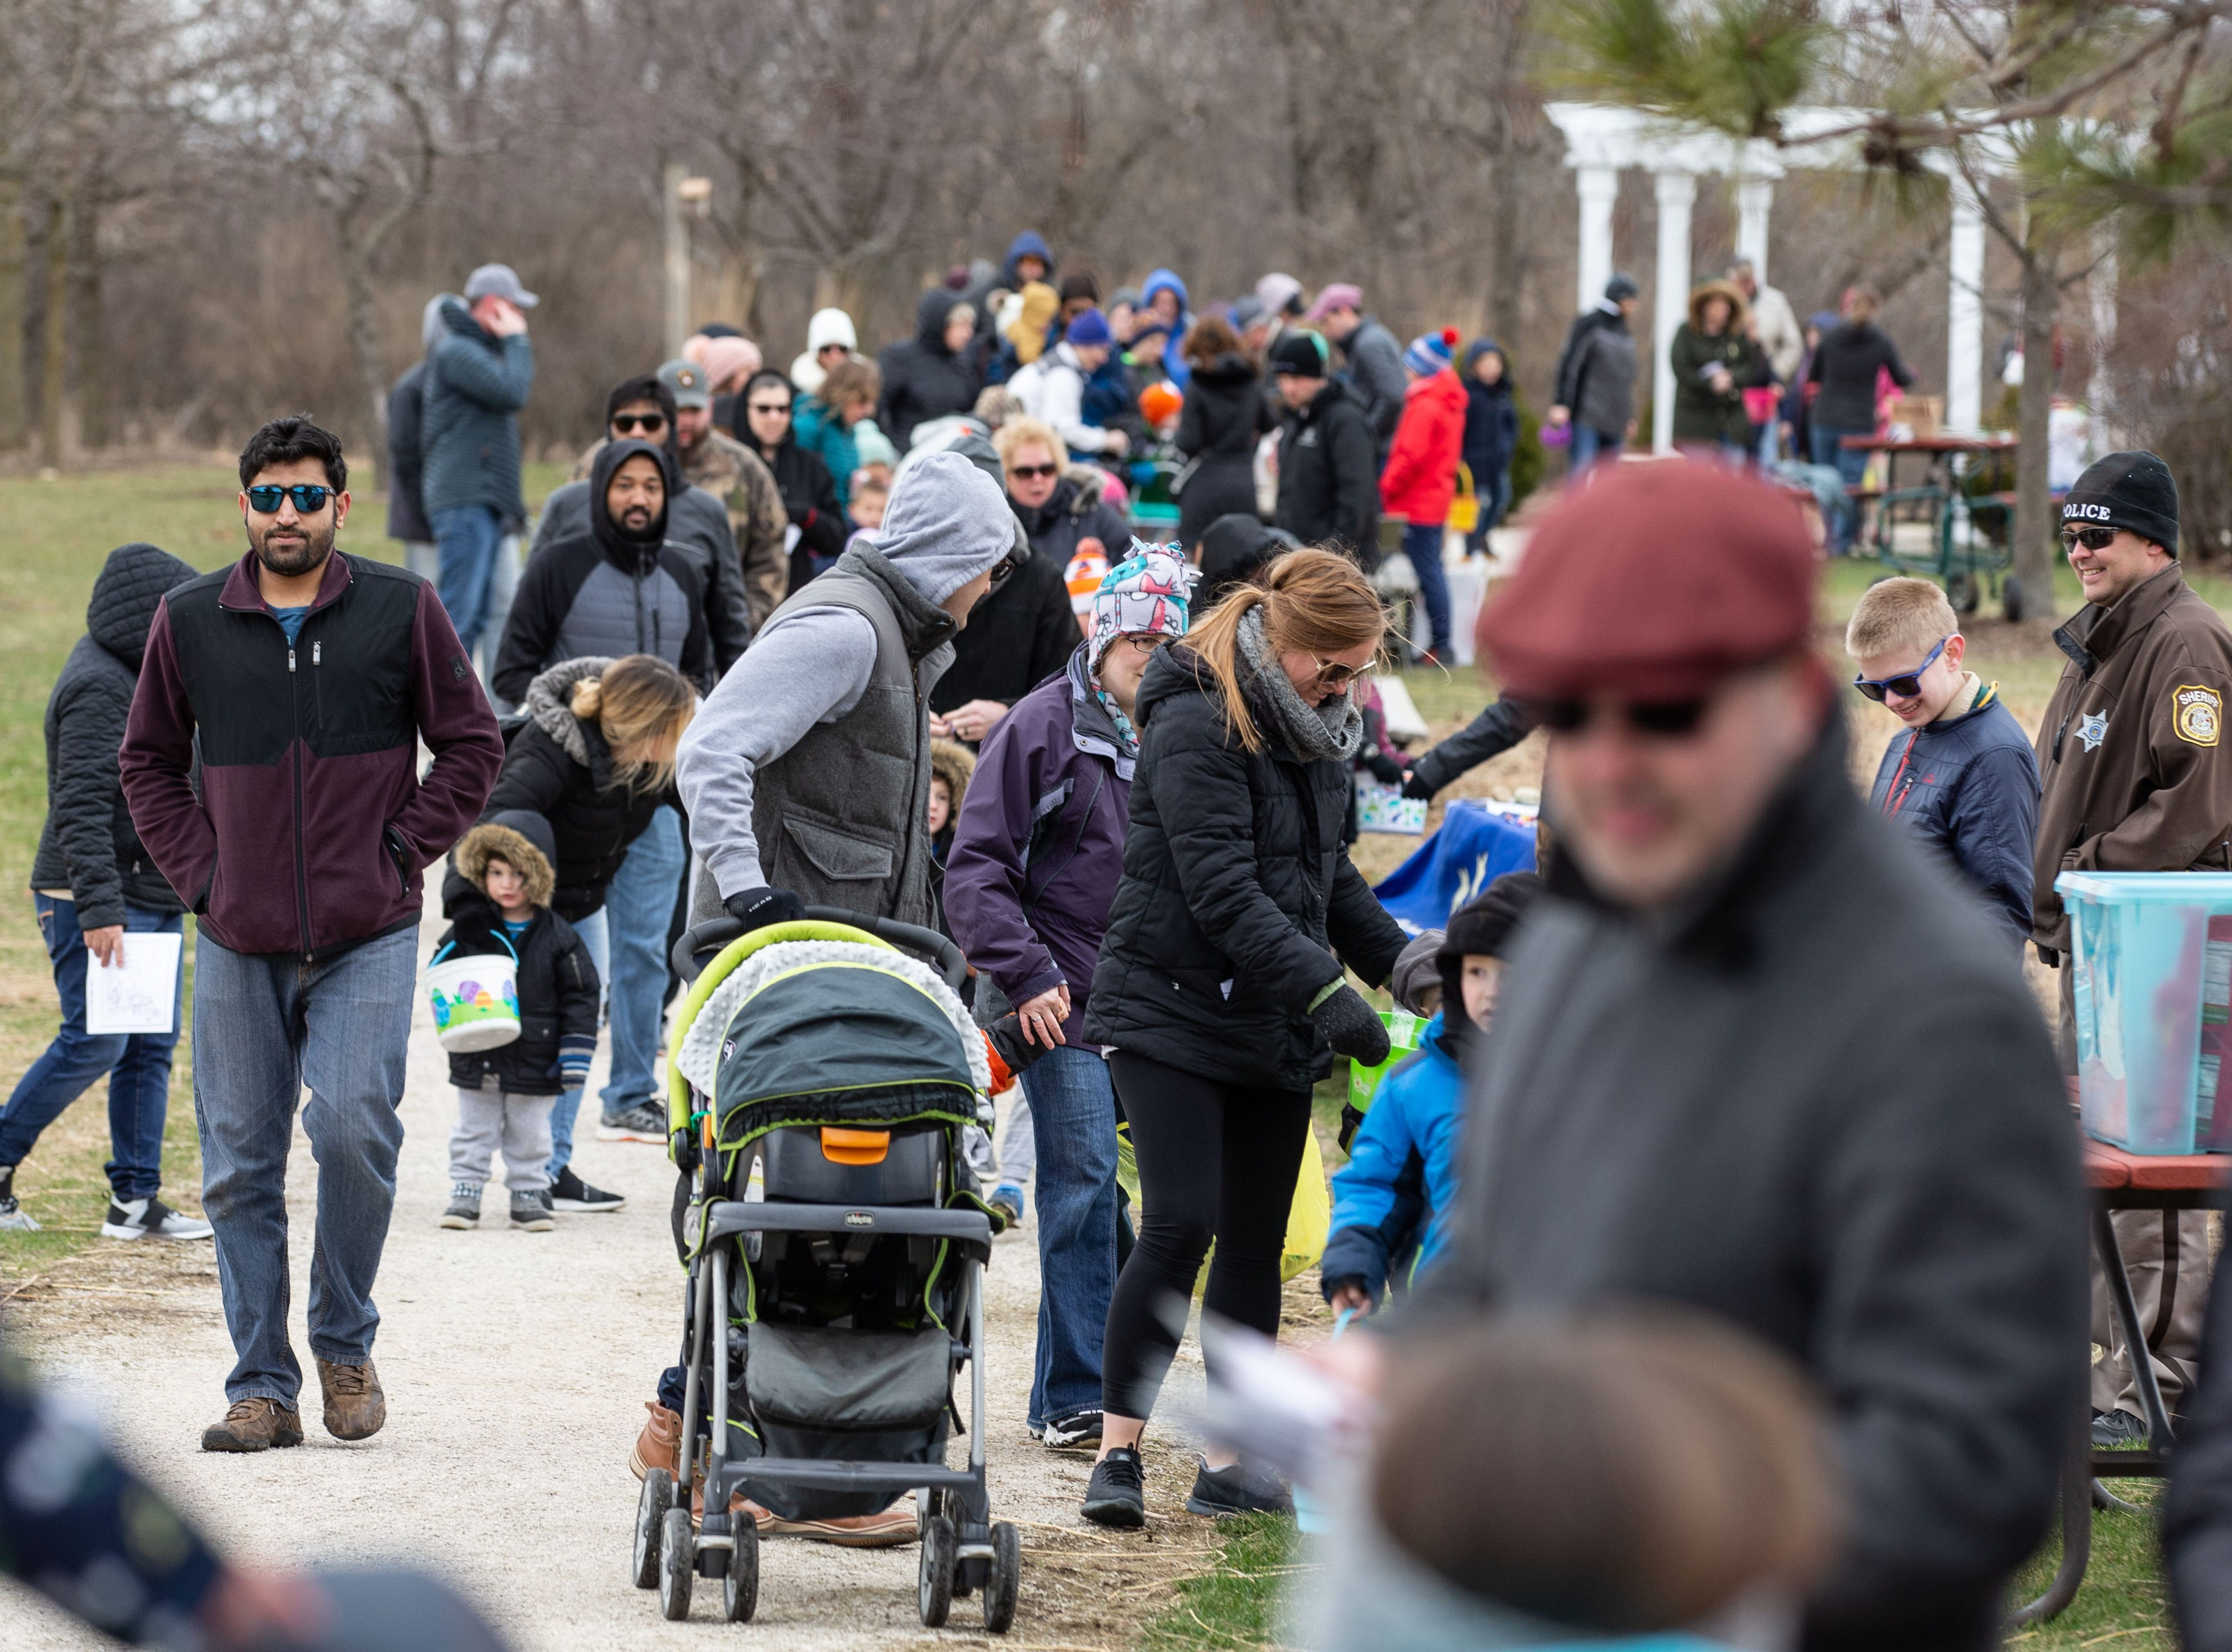 Visitors stream into Lisbon Community Park for the start of the annual Easter Extravaganza egg hunt on Saturday, April 13, 2019. Sponsored by the Lisbon Park Department, the hunt features treats from area businesses and organizations, pictures with the Easter Bunny, local emergency response vehicles and more.